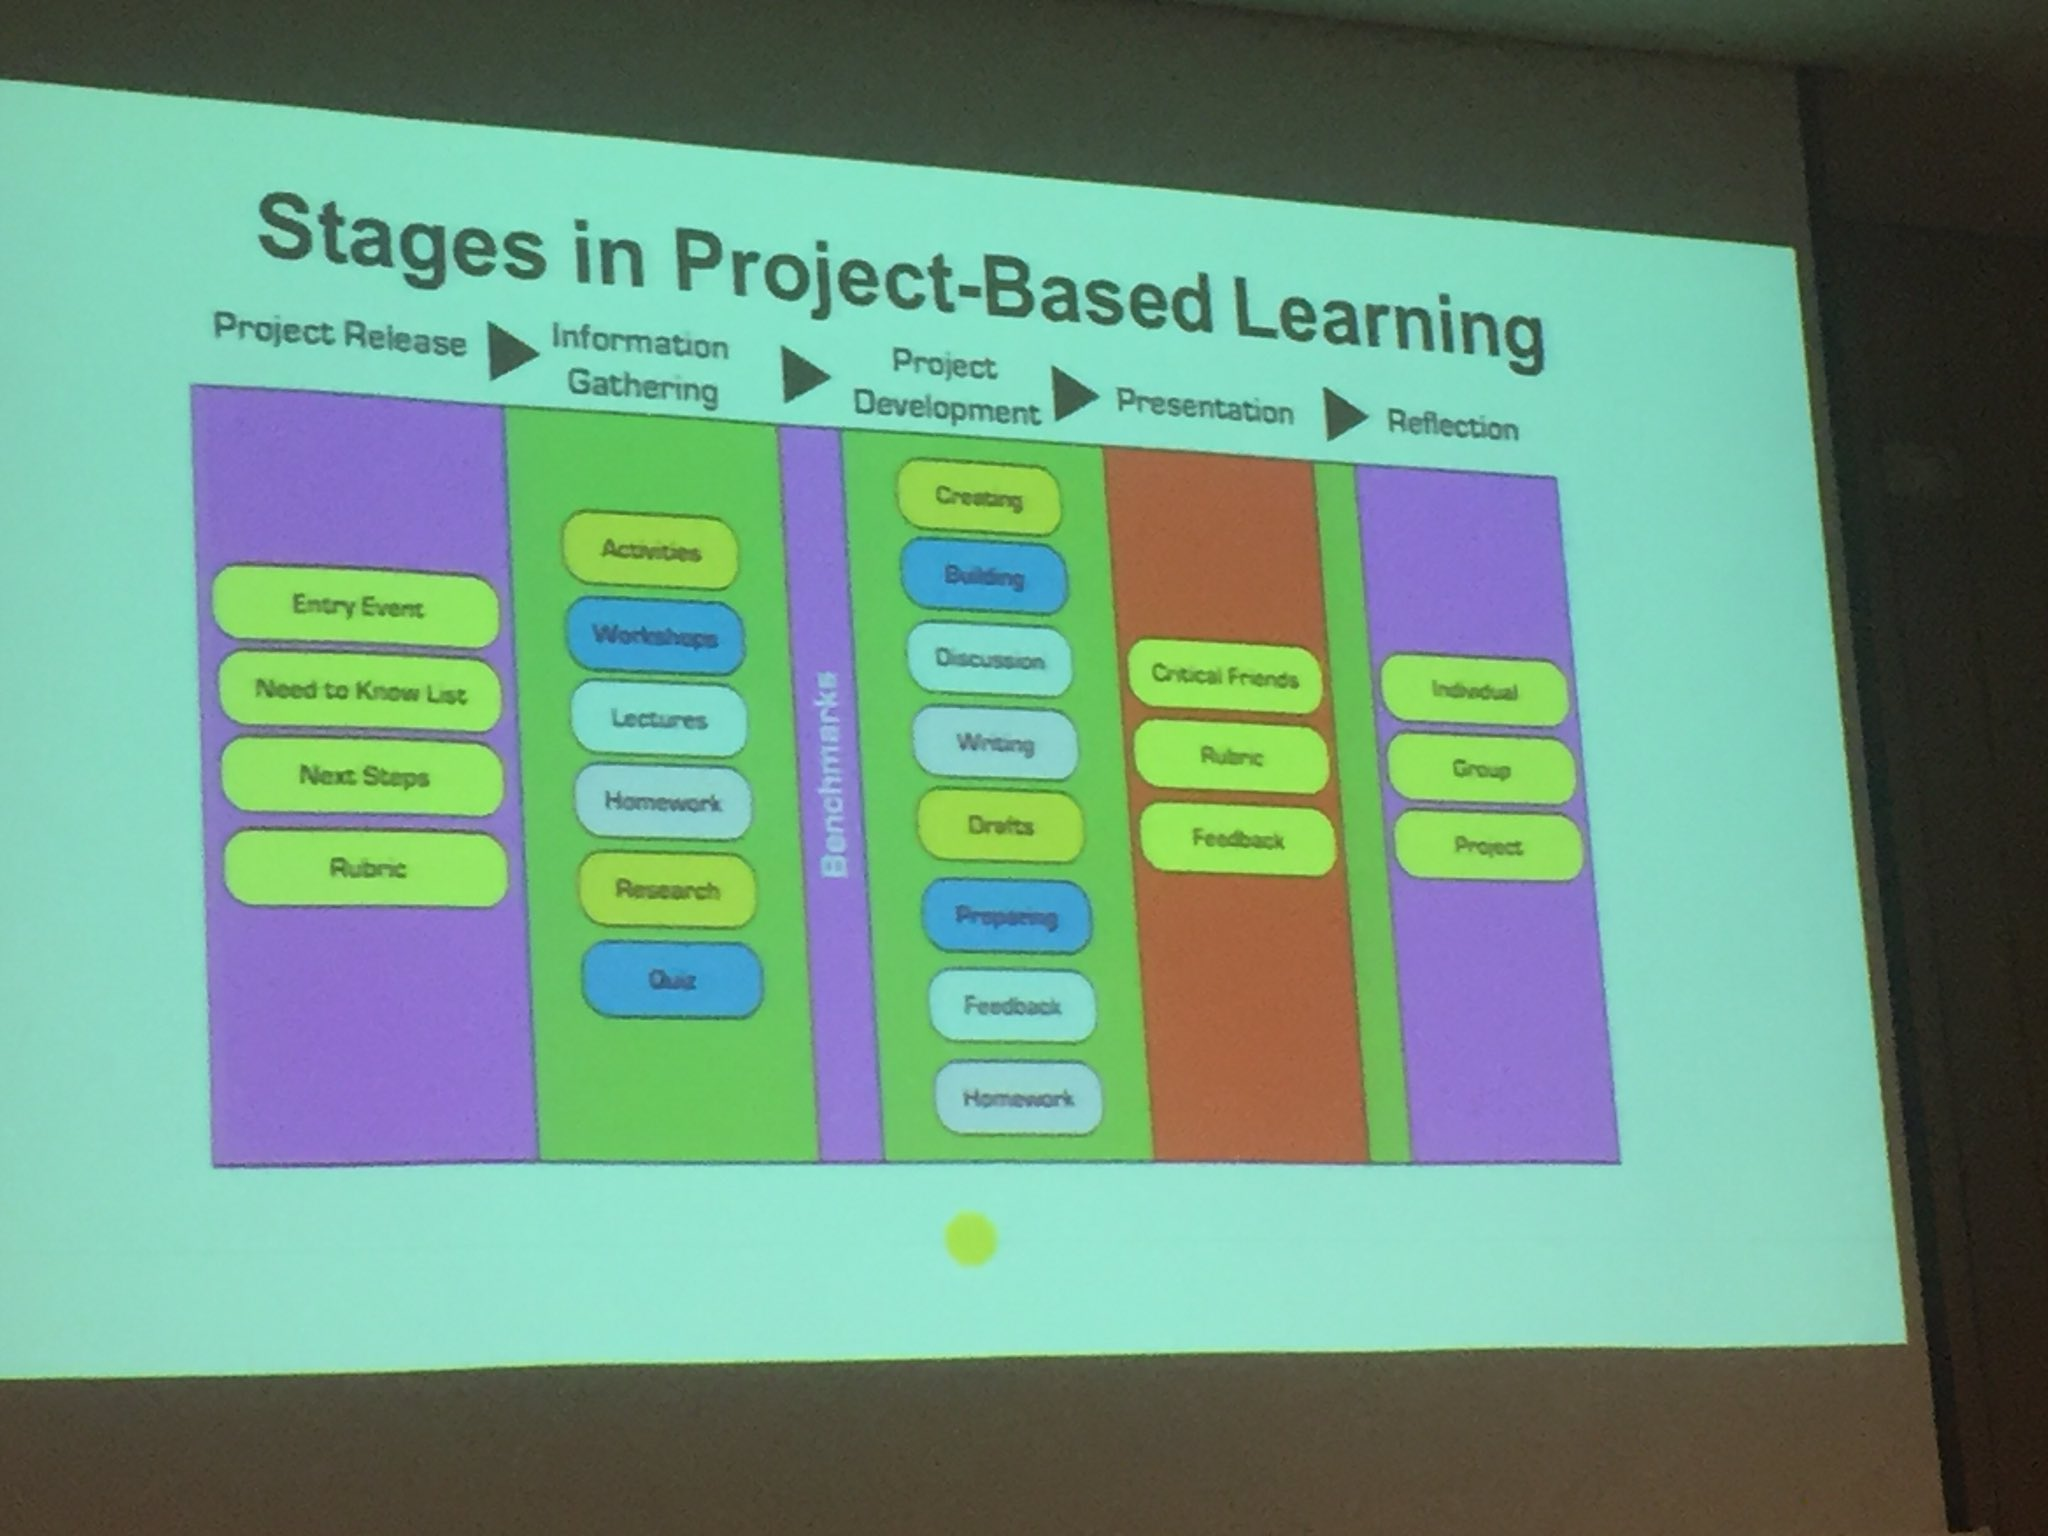 Stages in Project Based Learning from @gavhays #ACSAsym https://t.co/MuC9v8KGnt